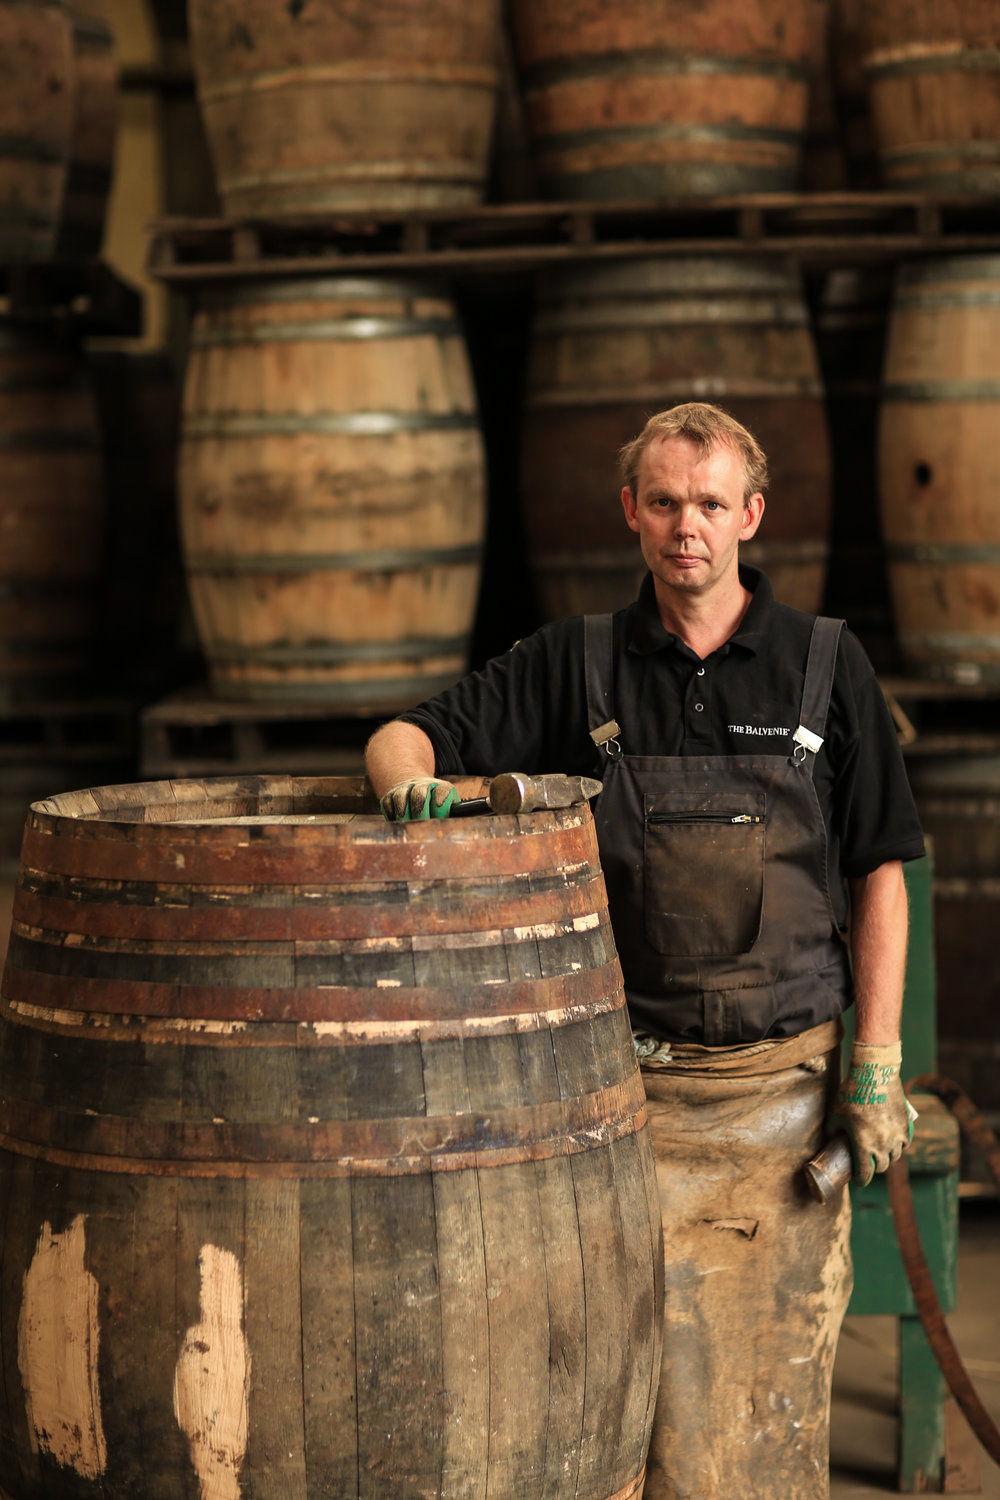 Whisky making in its most traditional form.